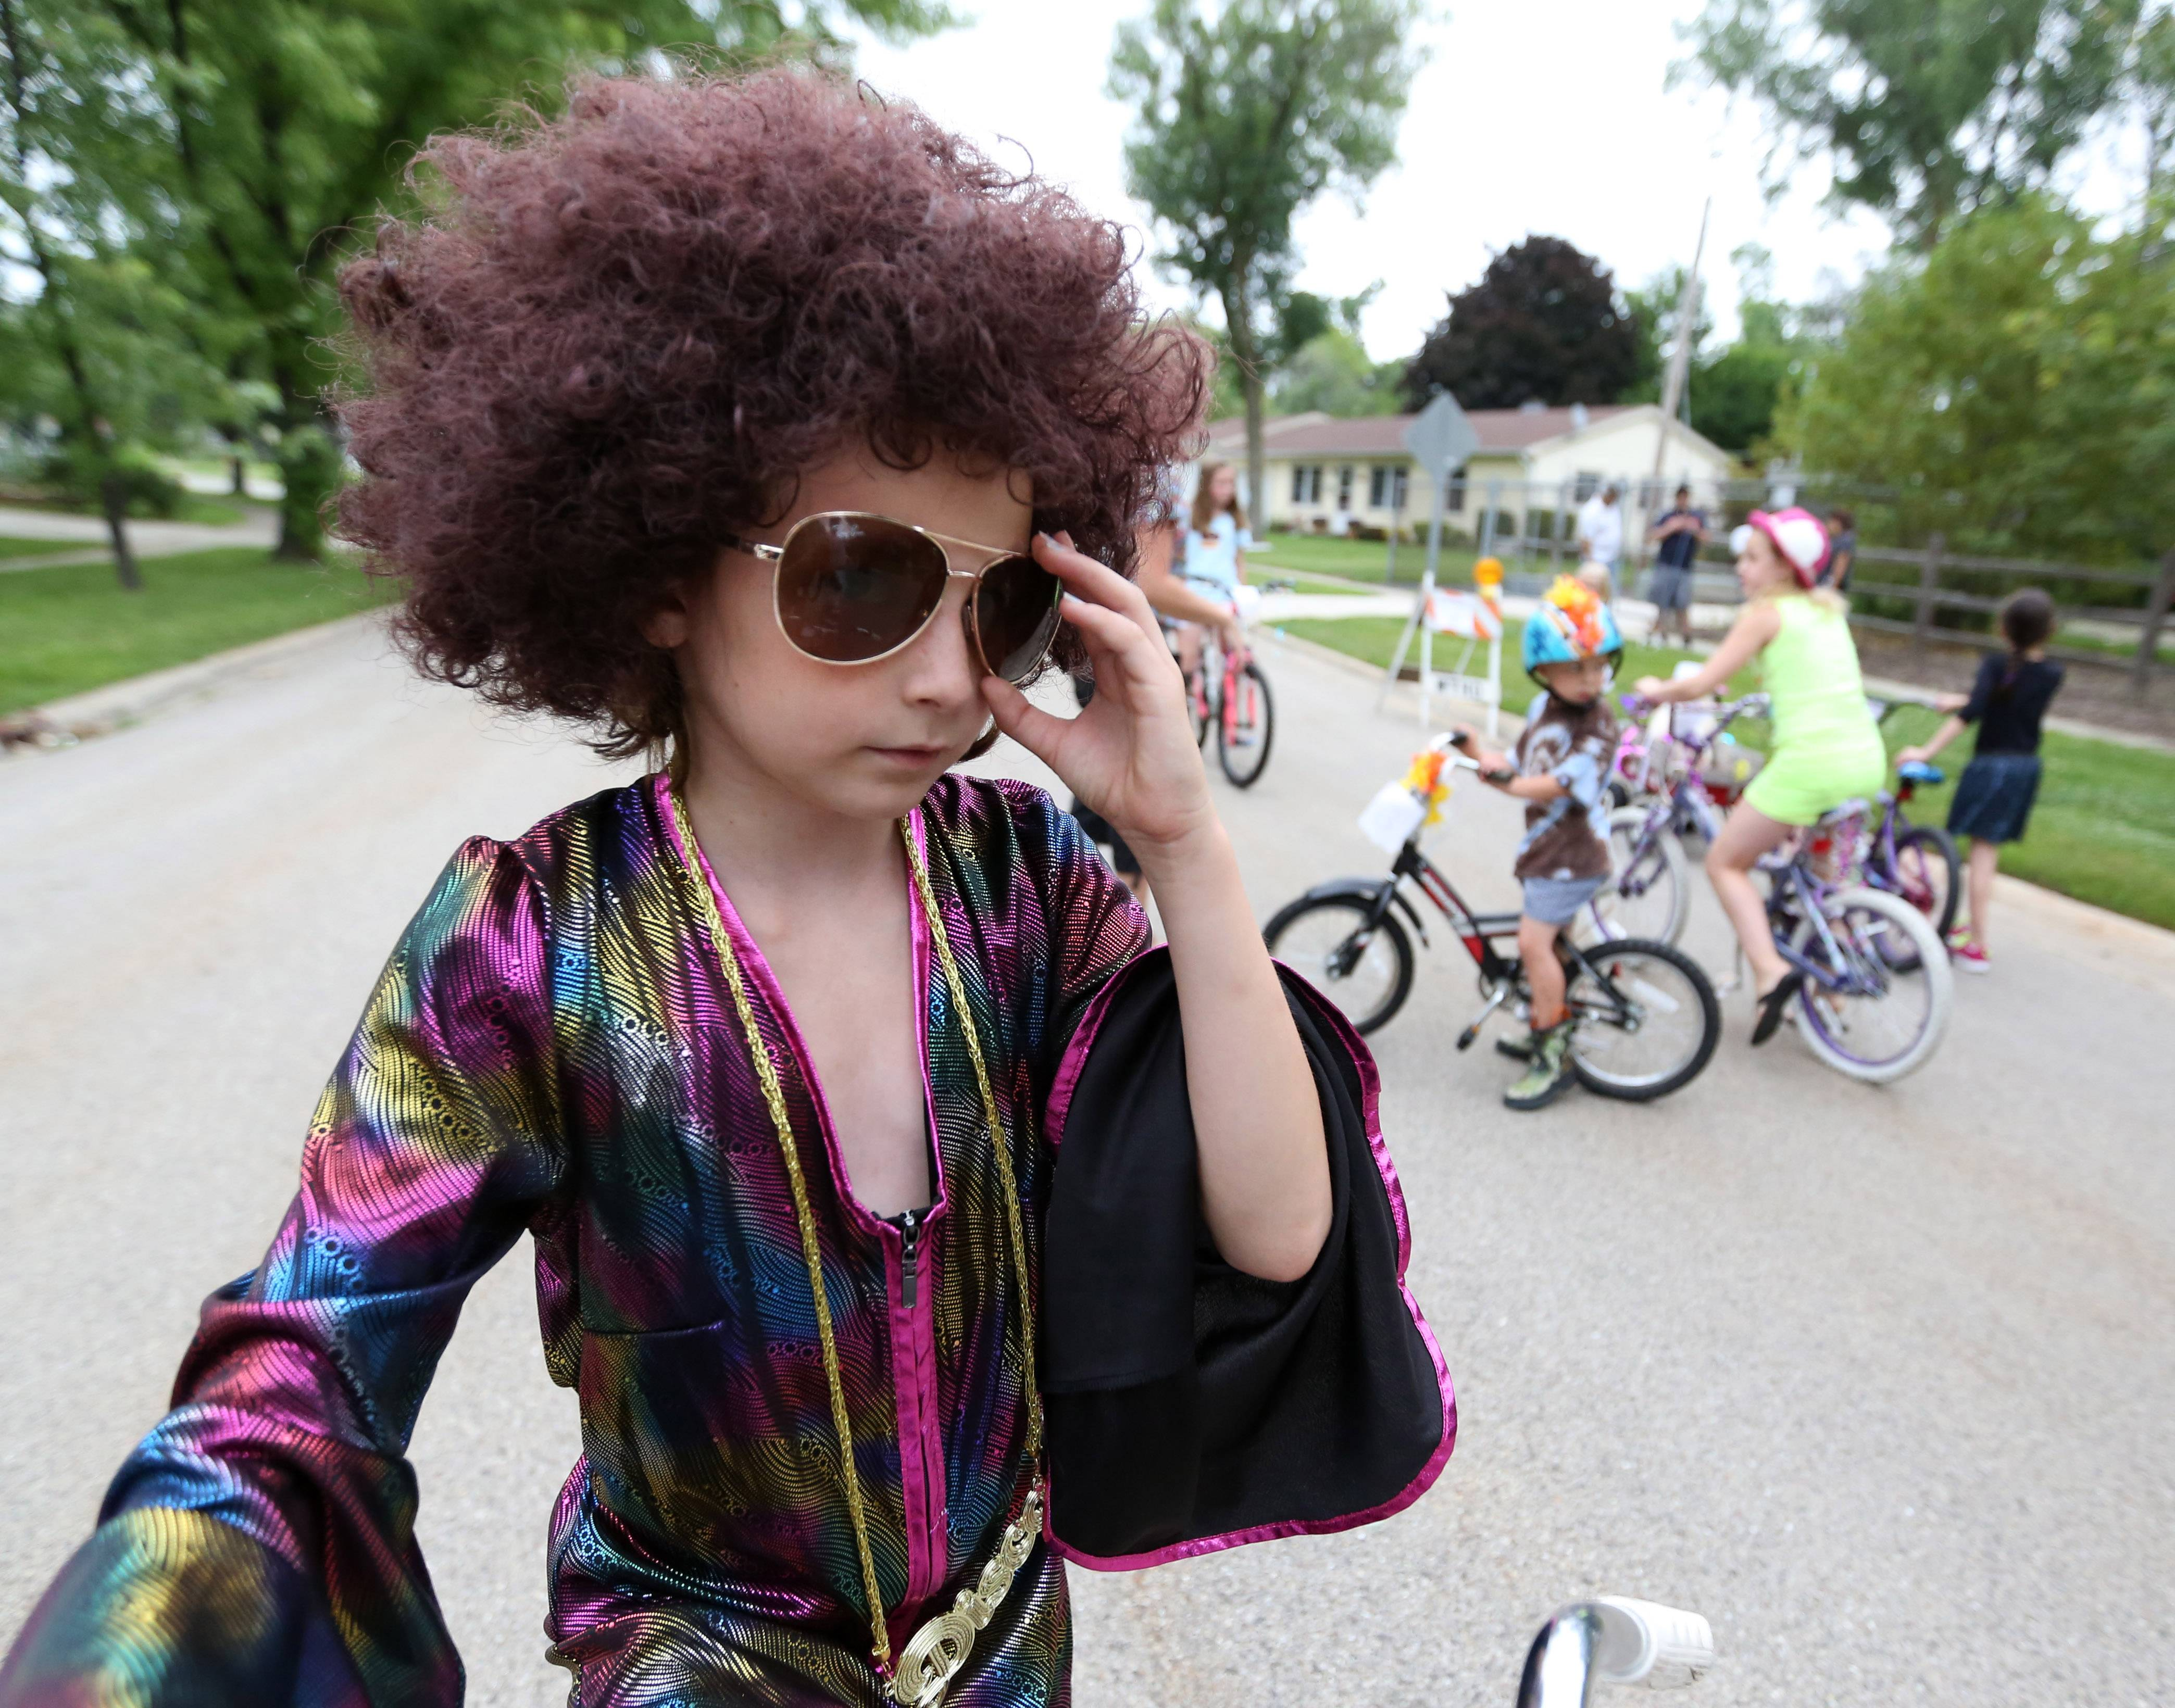 Gia Ruffolo, 8, of Grandwood Park adjusts his cool shades Saturday before leading a judged kids bike parade near Adams Park as part of the Grandwood Park Summerfest.